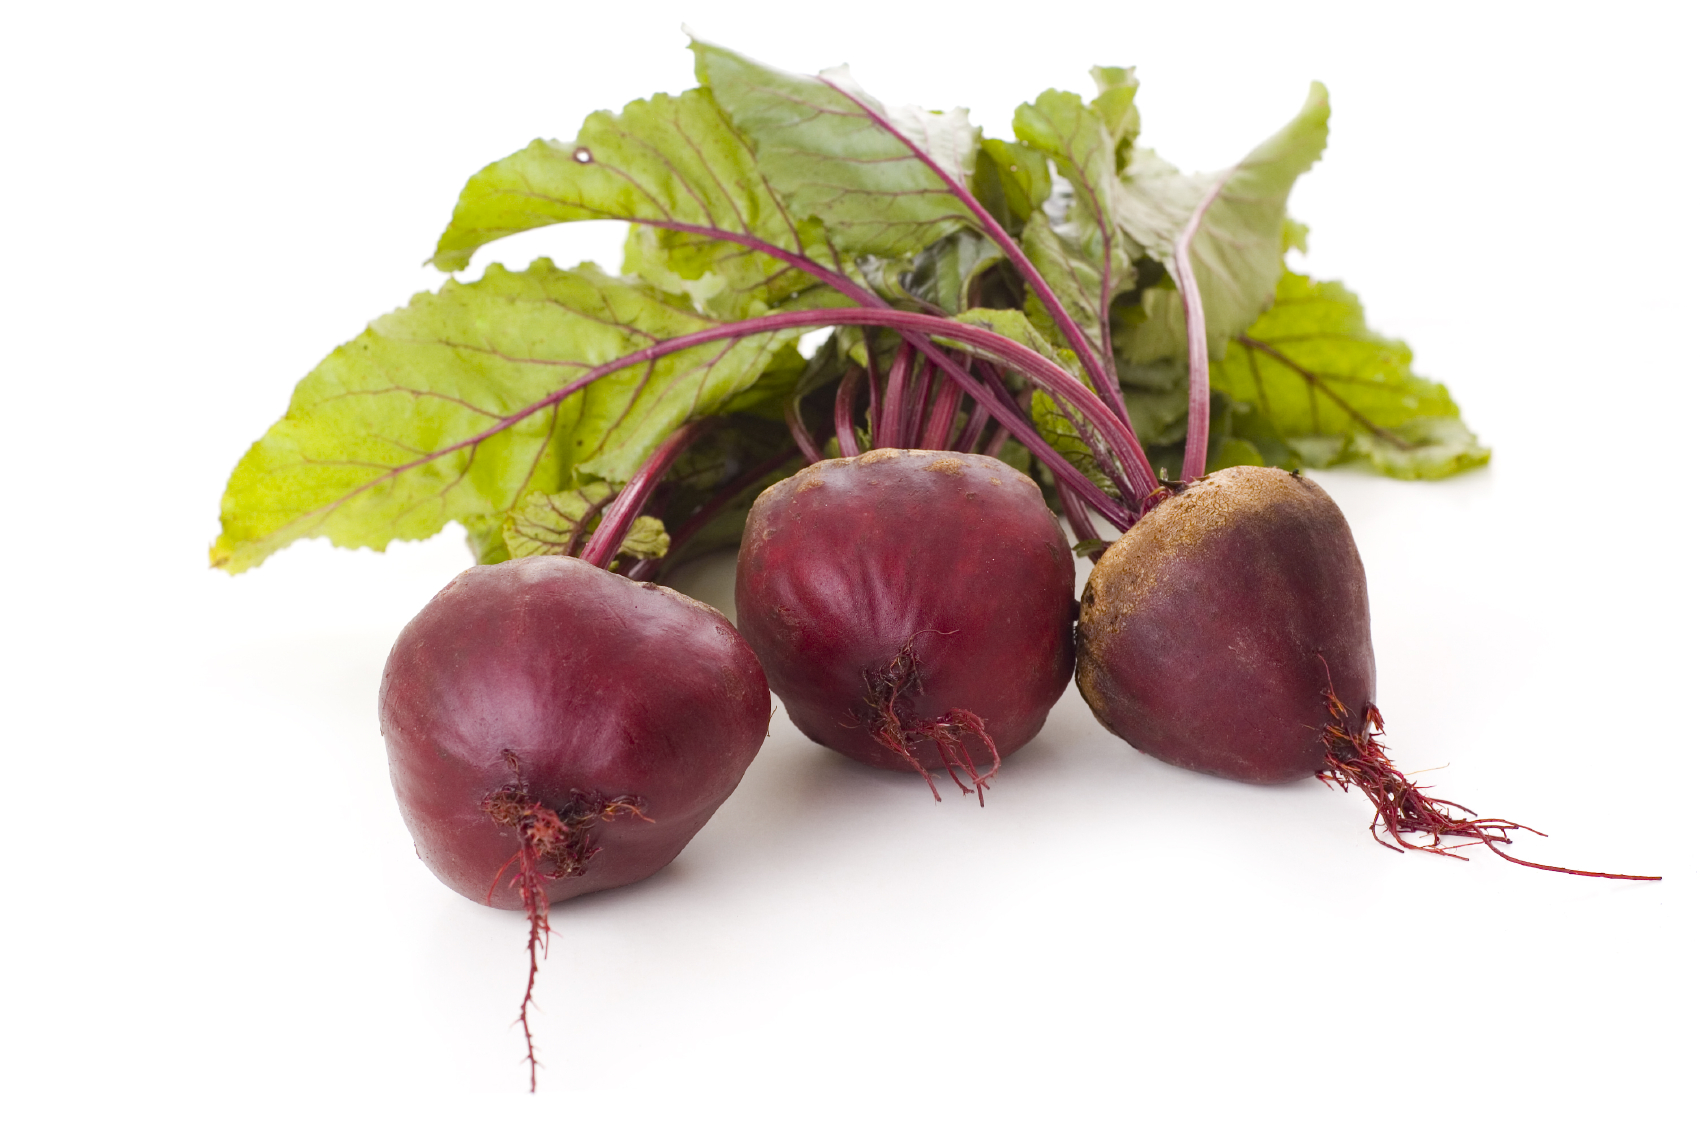 Eating beets comes with some major—and surprising—health benefits. Here are five big ones.